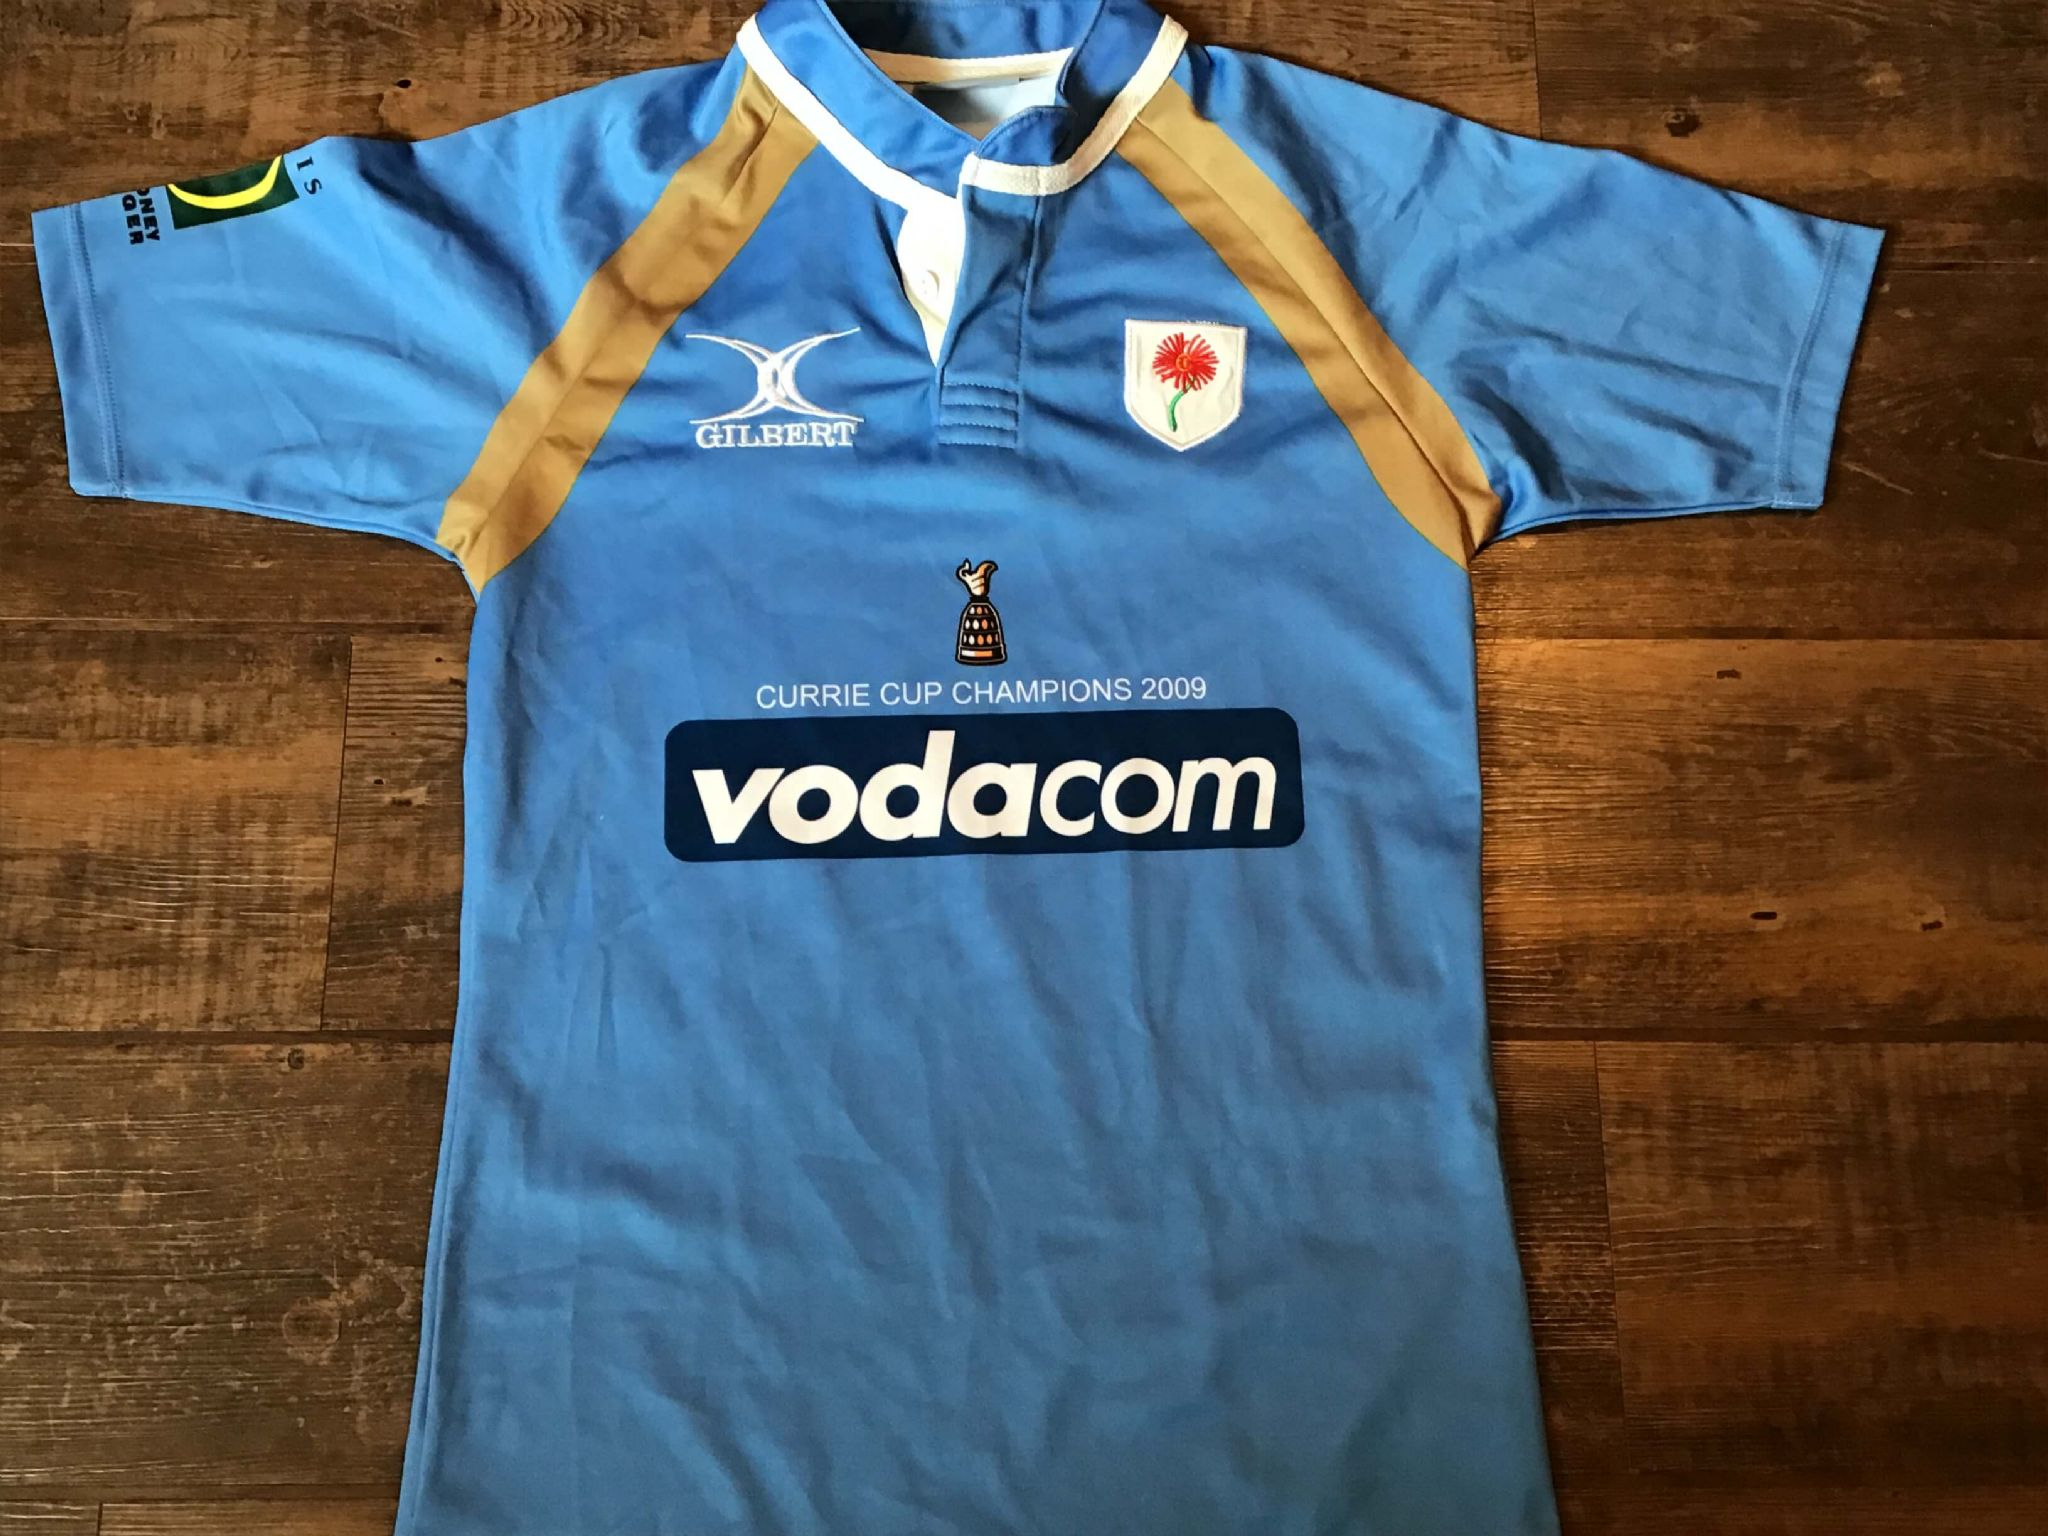 775b3022fec 2009 Blue Bulls Currie Cup Champions Rugby Union Shirt Adults Small